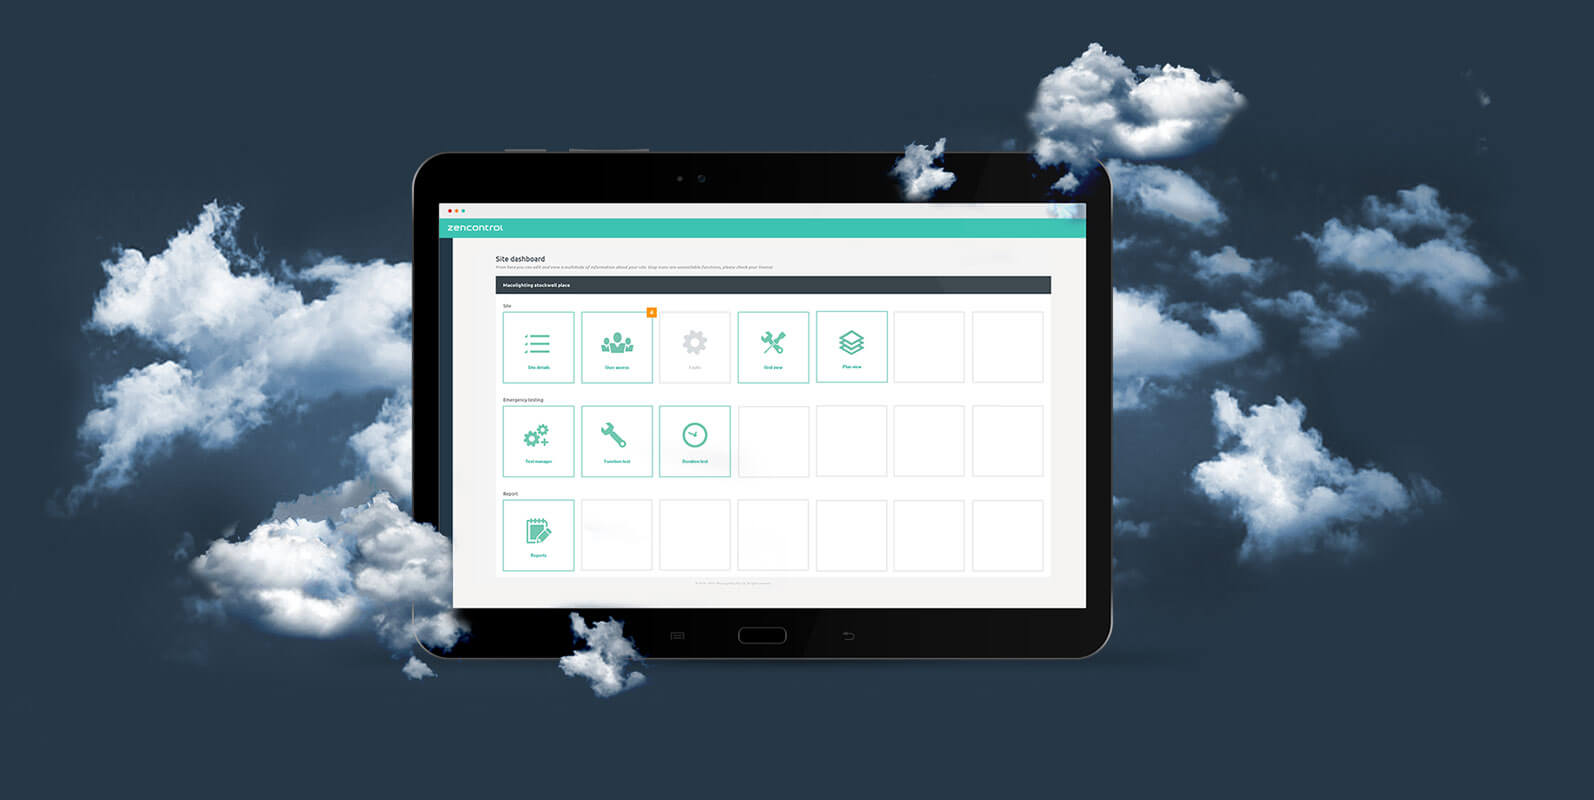 Dali Experts Zencontrol Single Switch Application Use Normal Light As Emergency Click The Cloud Brings An Unprecedented Level Of Functionality And Control To Your Building